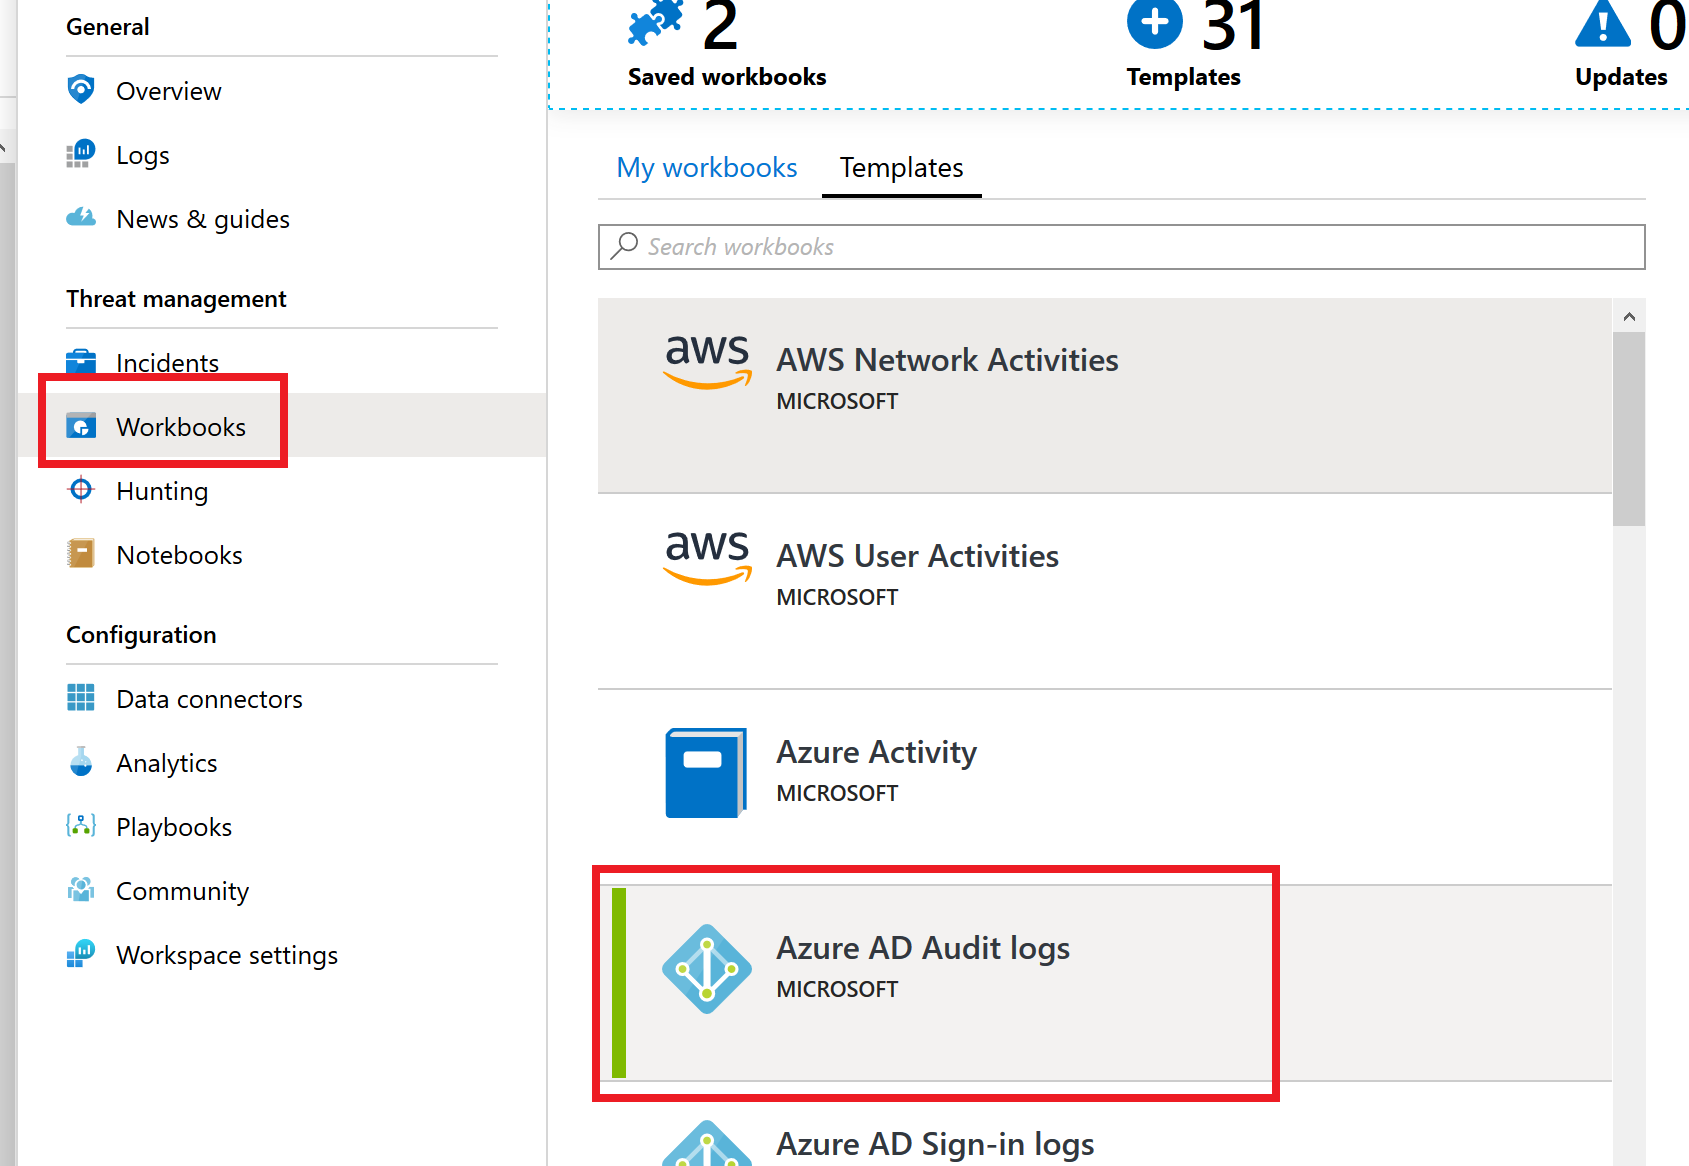 In this screenshot, Dashboards has been selected and the Azure AD Audit Logs dashboard has also been selected.